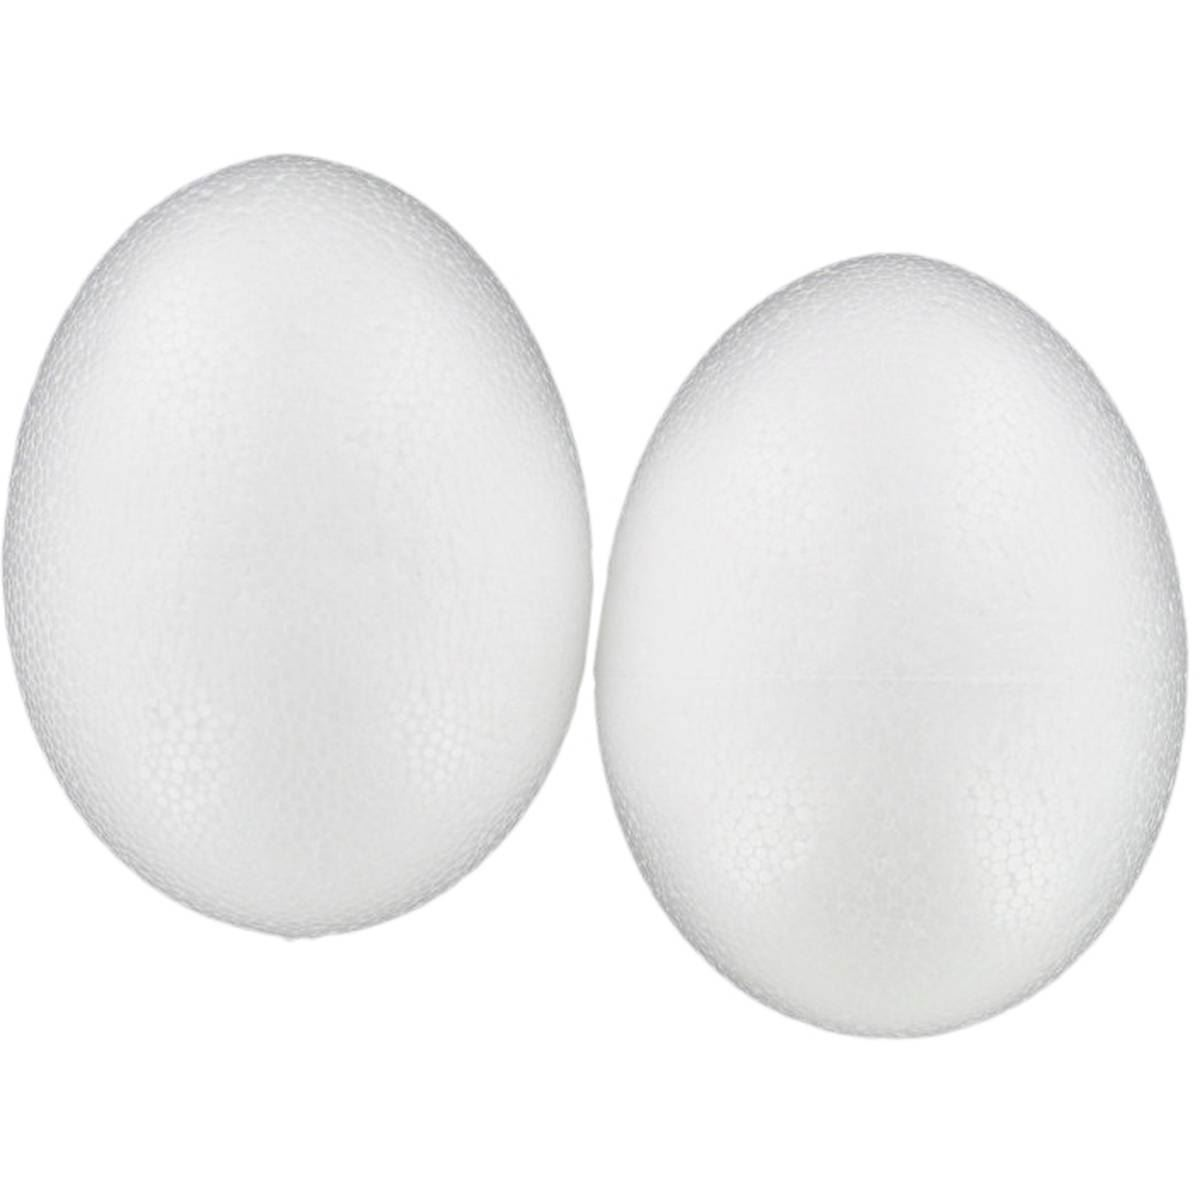 Hobby Craft Polystyrene Eggs